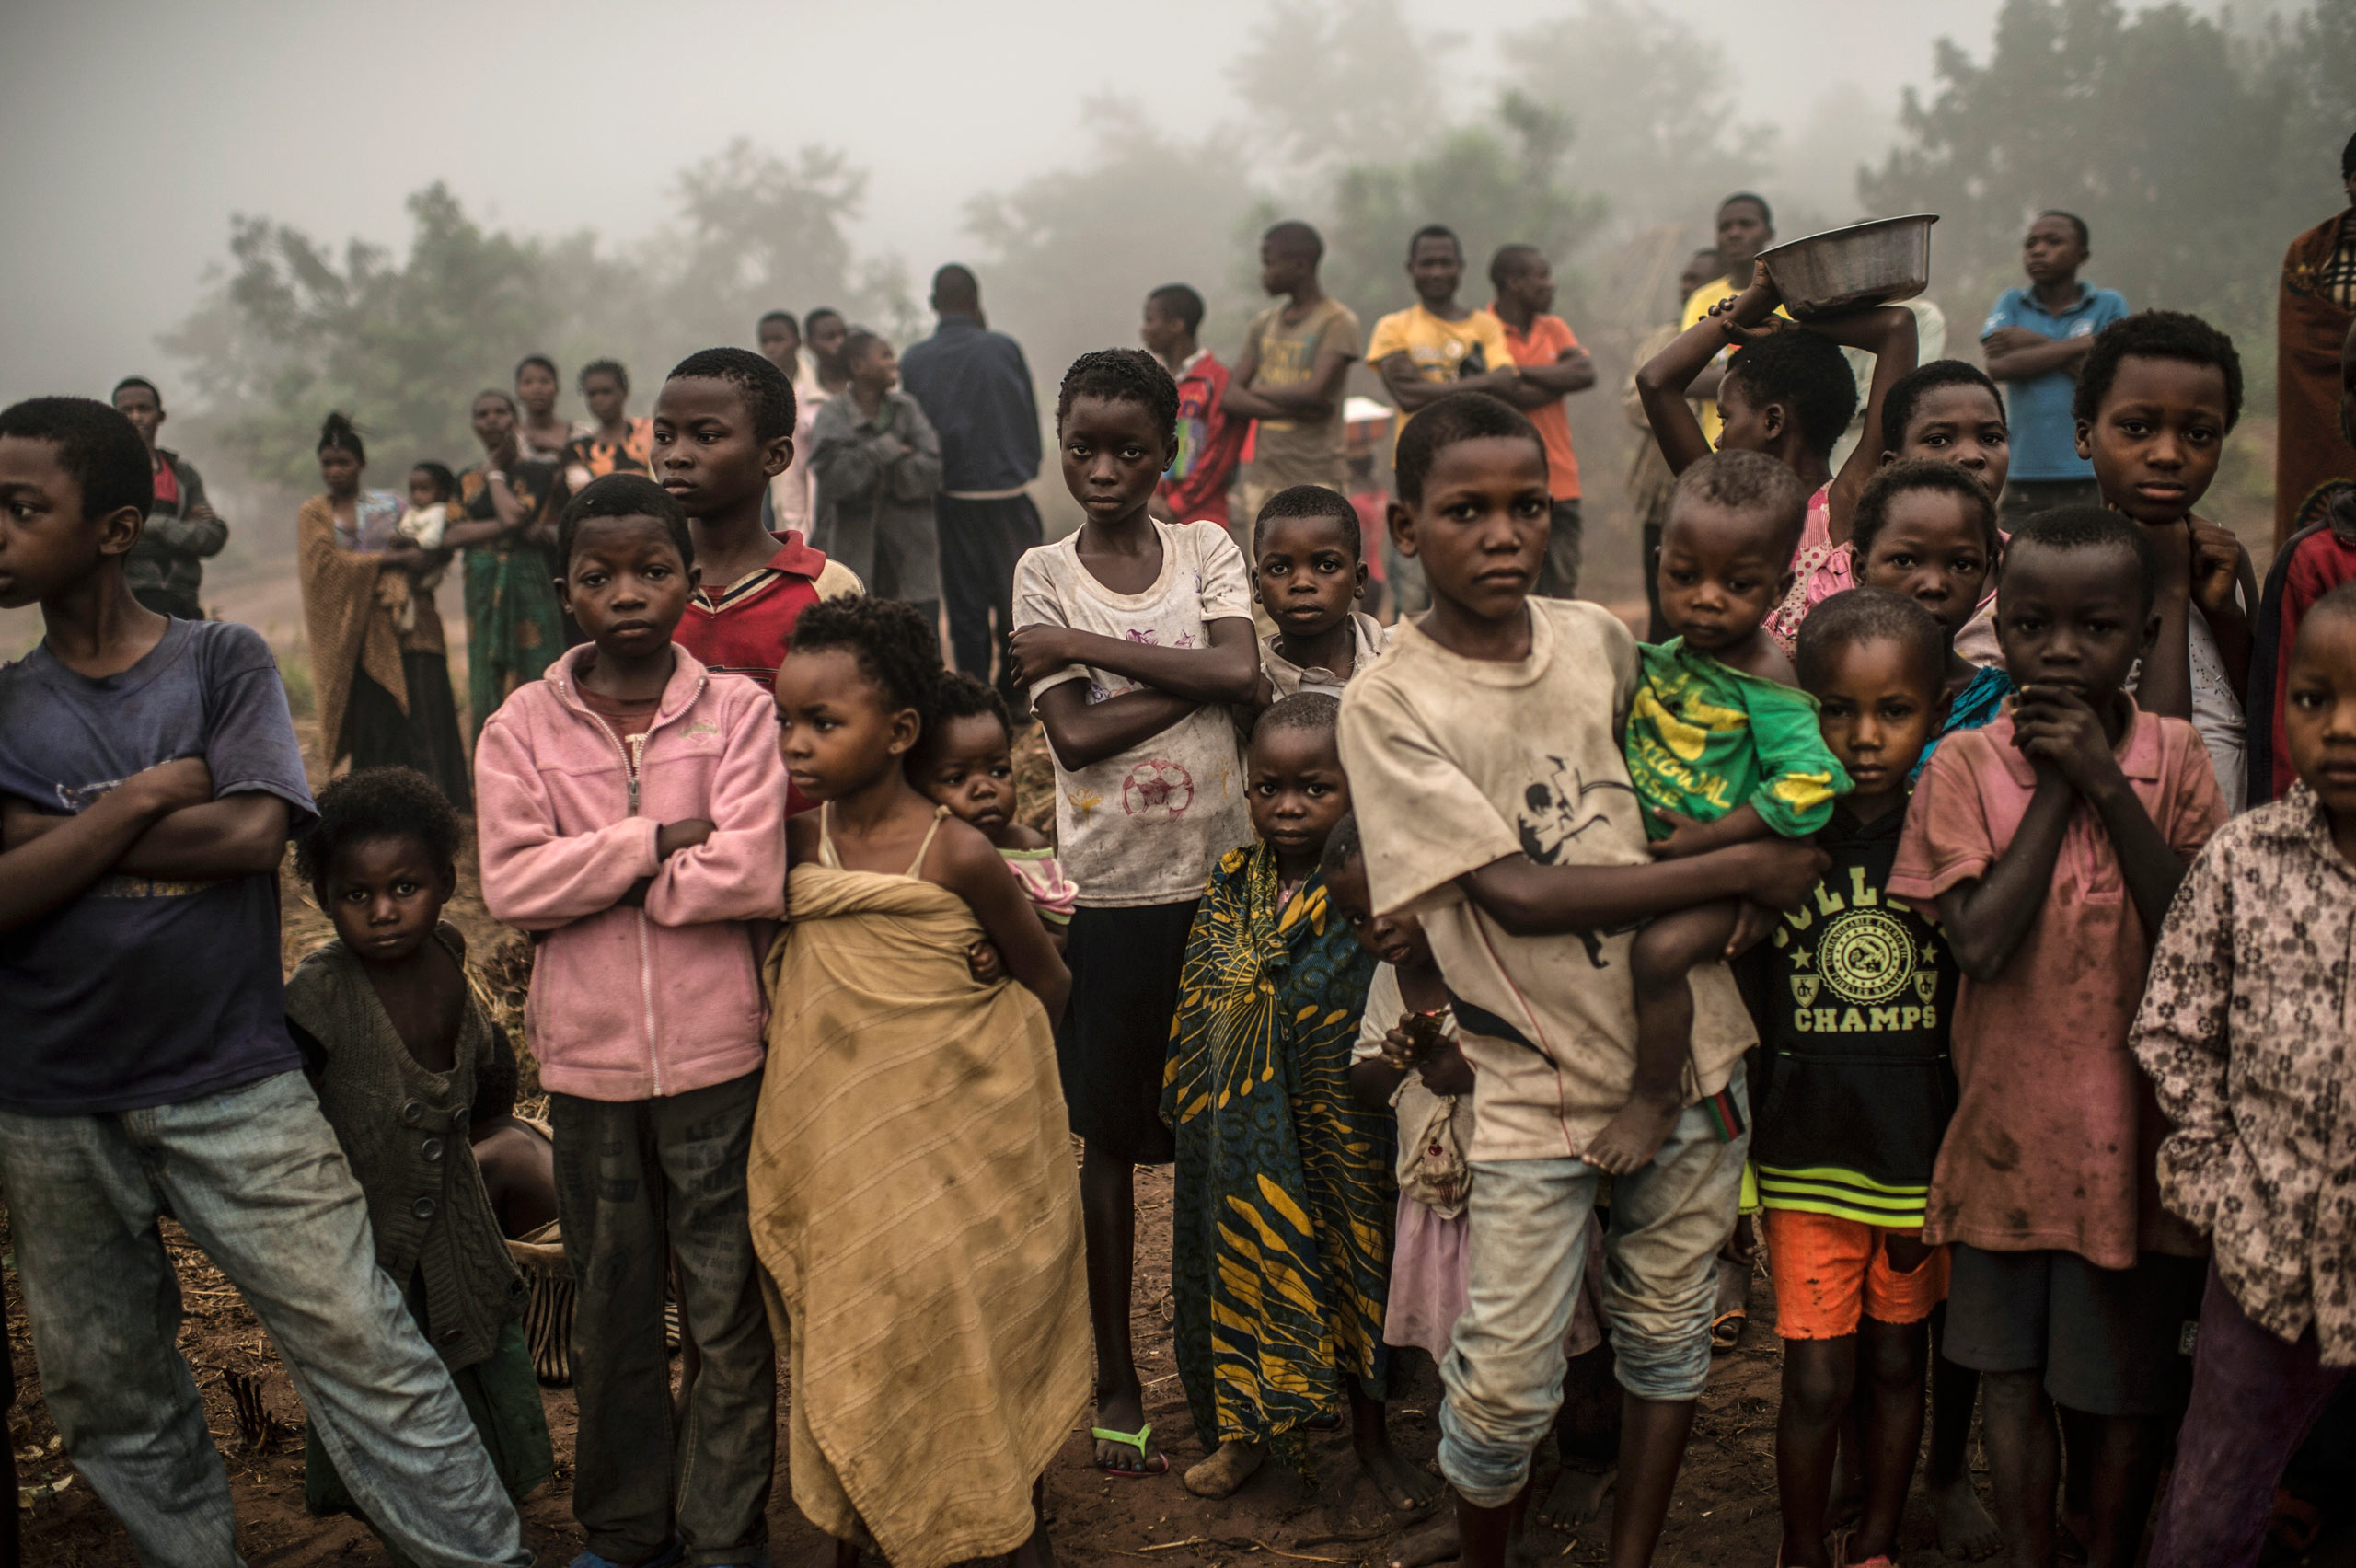 Congolese children in the village of Lungudi, where poverty has forced some school-age children into mining. Aug. 7, 2015.